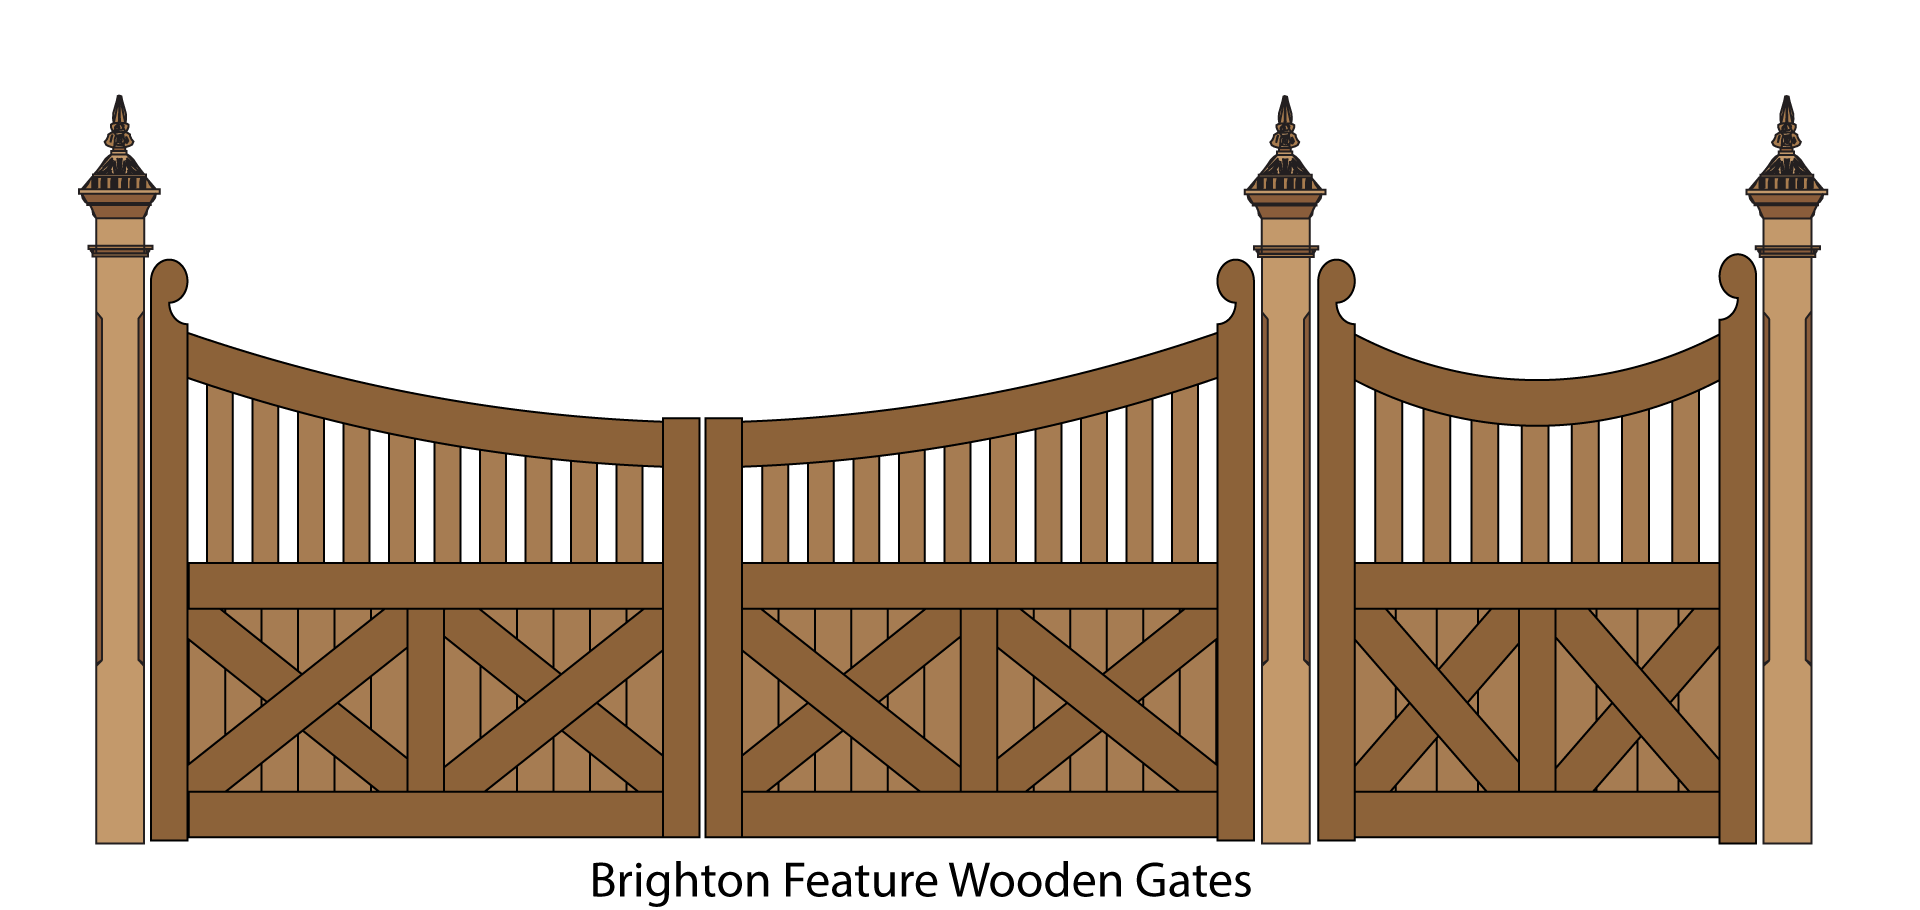 Drawing barns fence. Cliparts for free